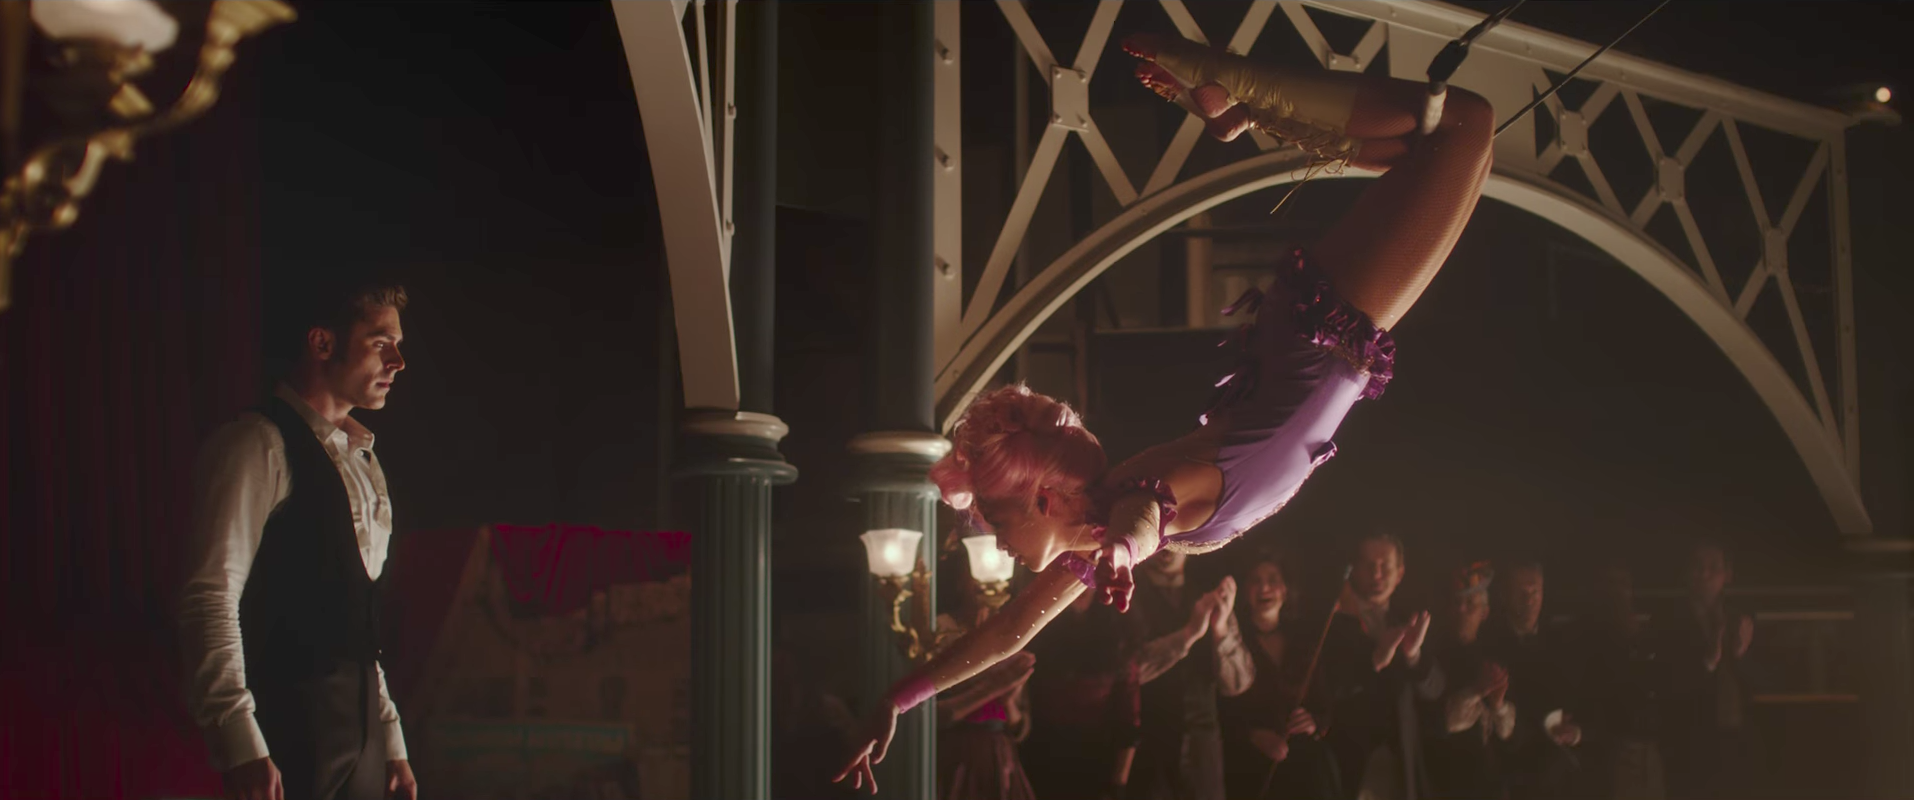 The Greatest Showman, the greatest showman movie, greatest showman, Hugh Jackman, zac efron, michelle williams, Zendaya, PT Barnum, p.t. barnum, barnum circus, La La Land,